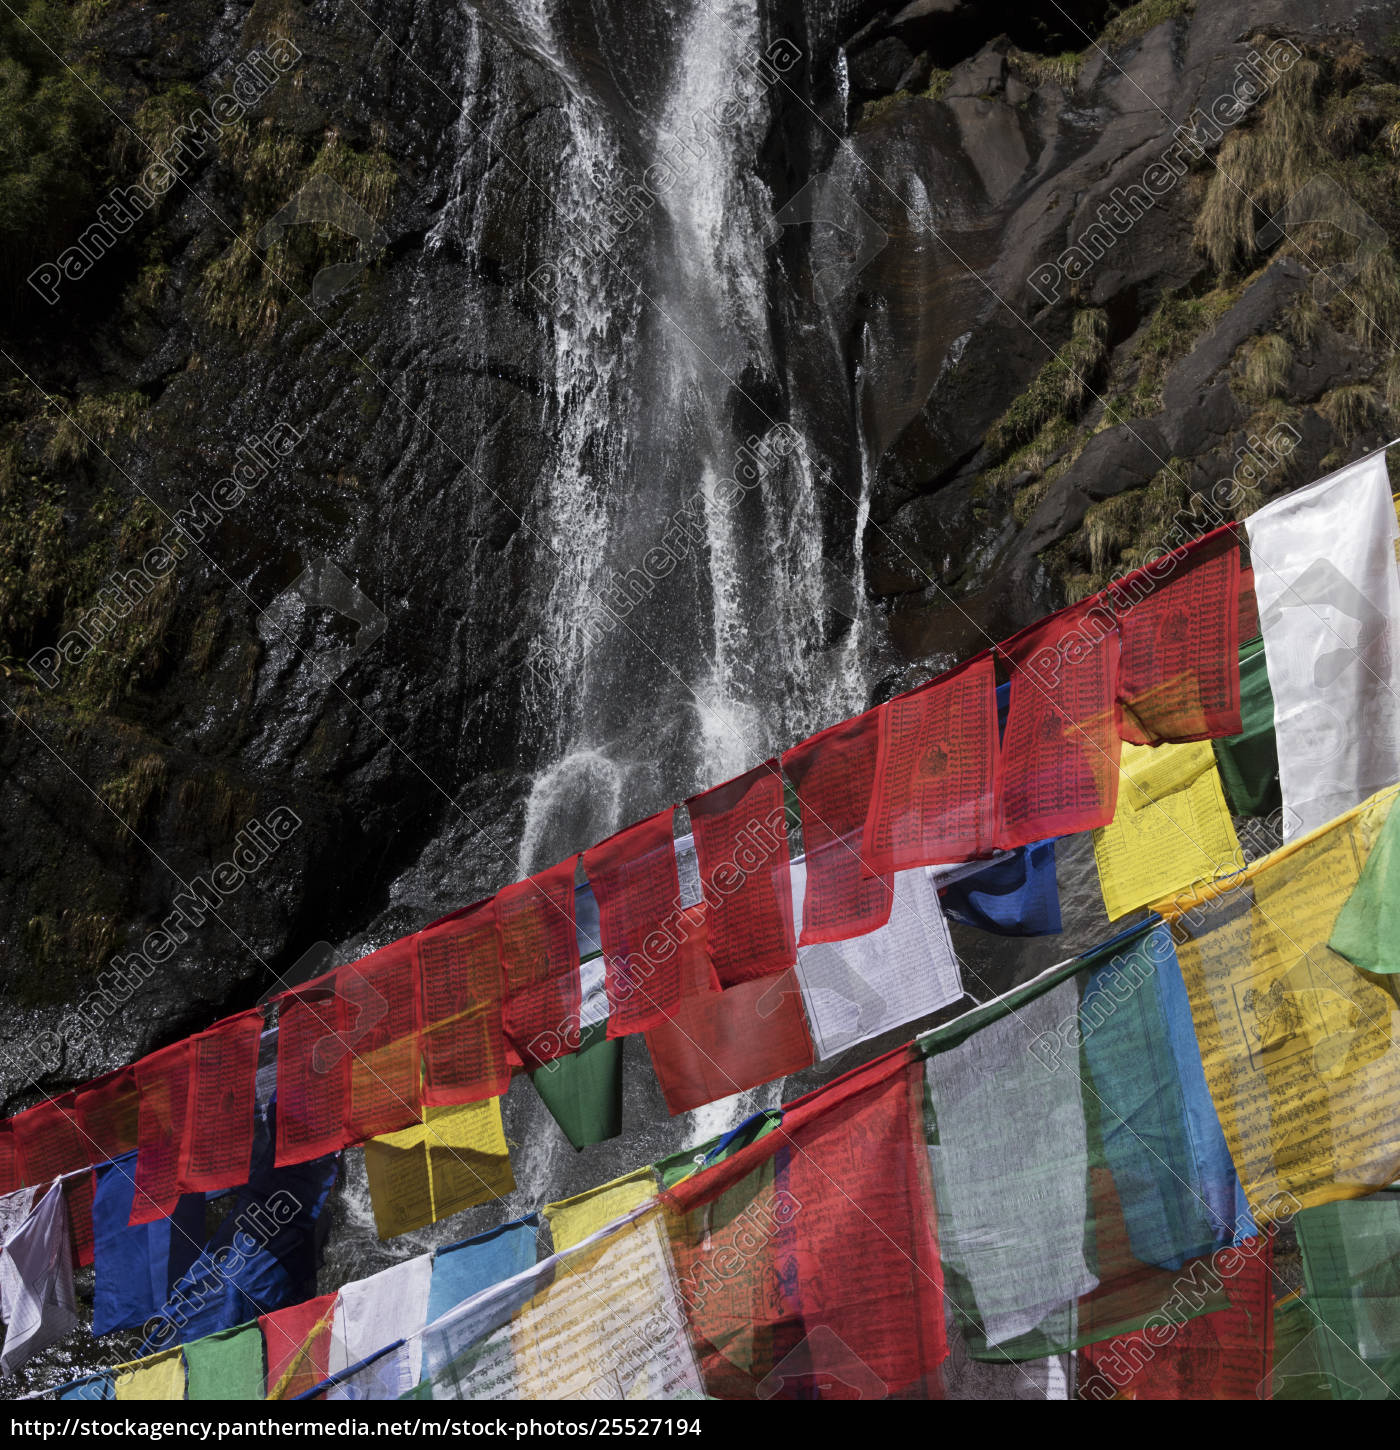 colourful, prayer, flags, and, a, waterfall - 25527194